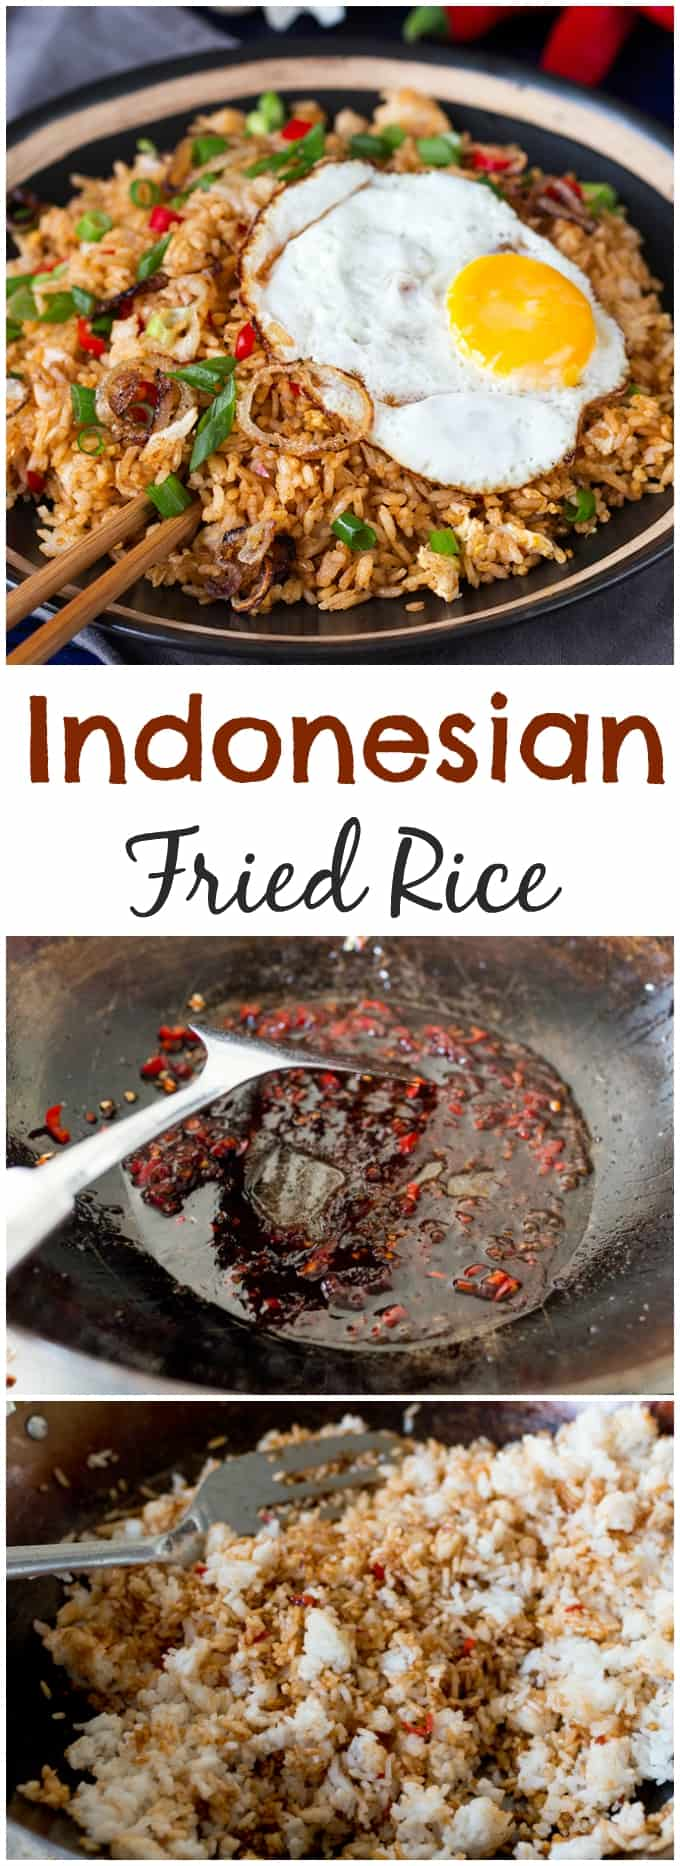 How to make spicy Indonesian fried rice. #BetterthanTakeout #fakeaway #friedrice #recipe